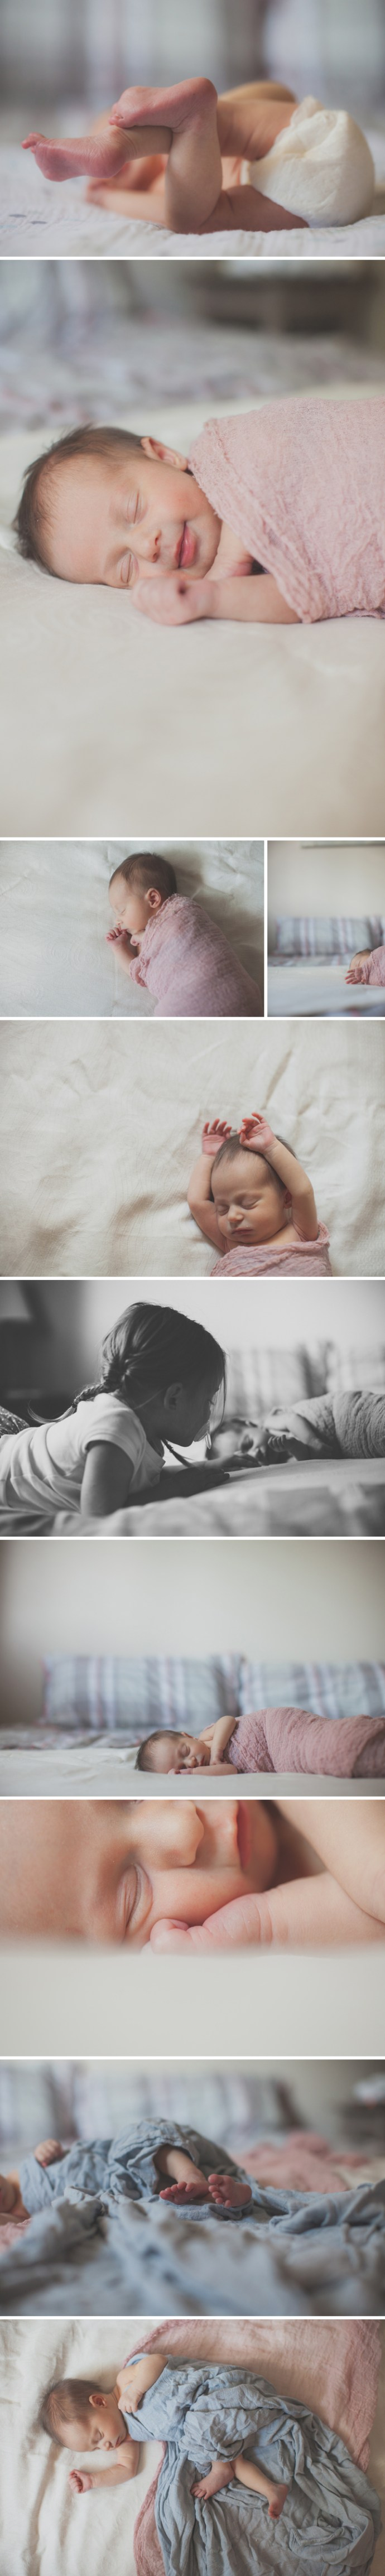 newborn lifestyle photography | ©The Paper Deer Photography | thepaperdeer.ca